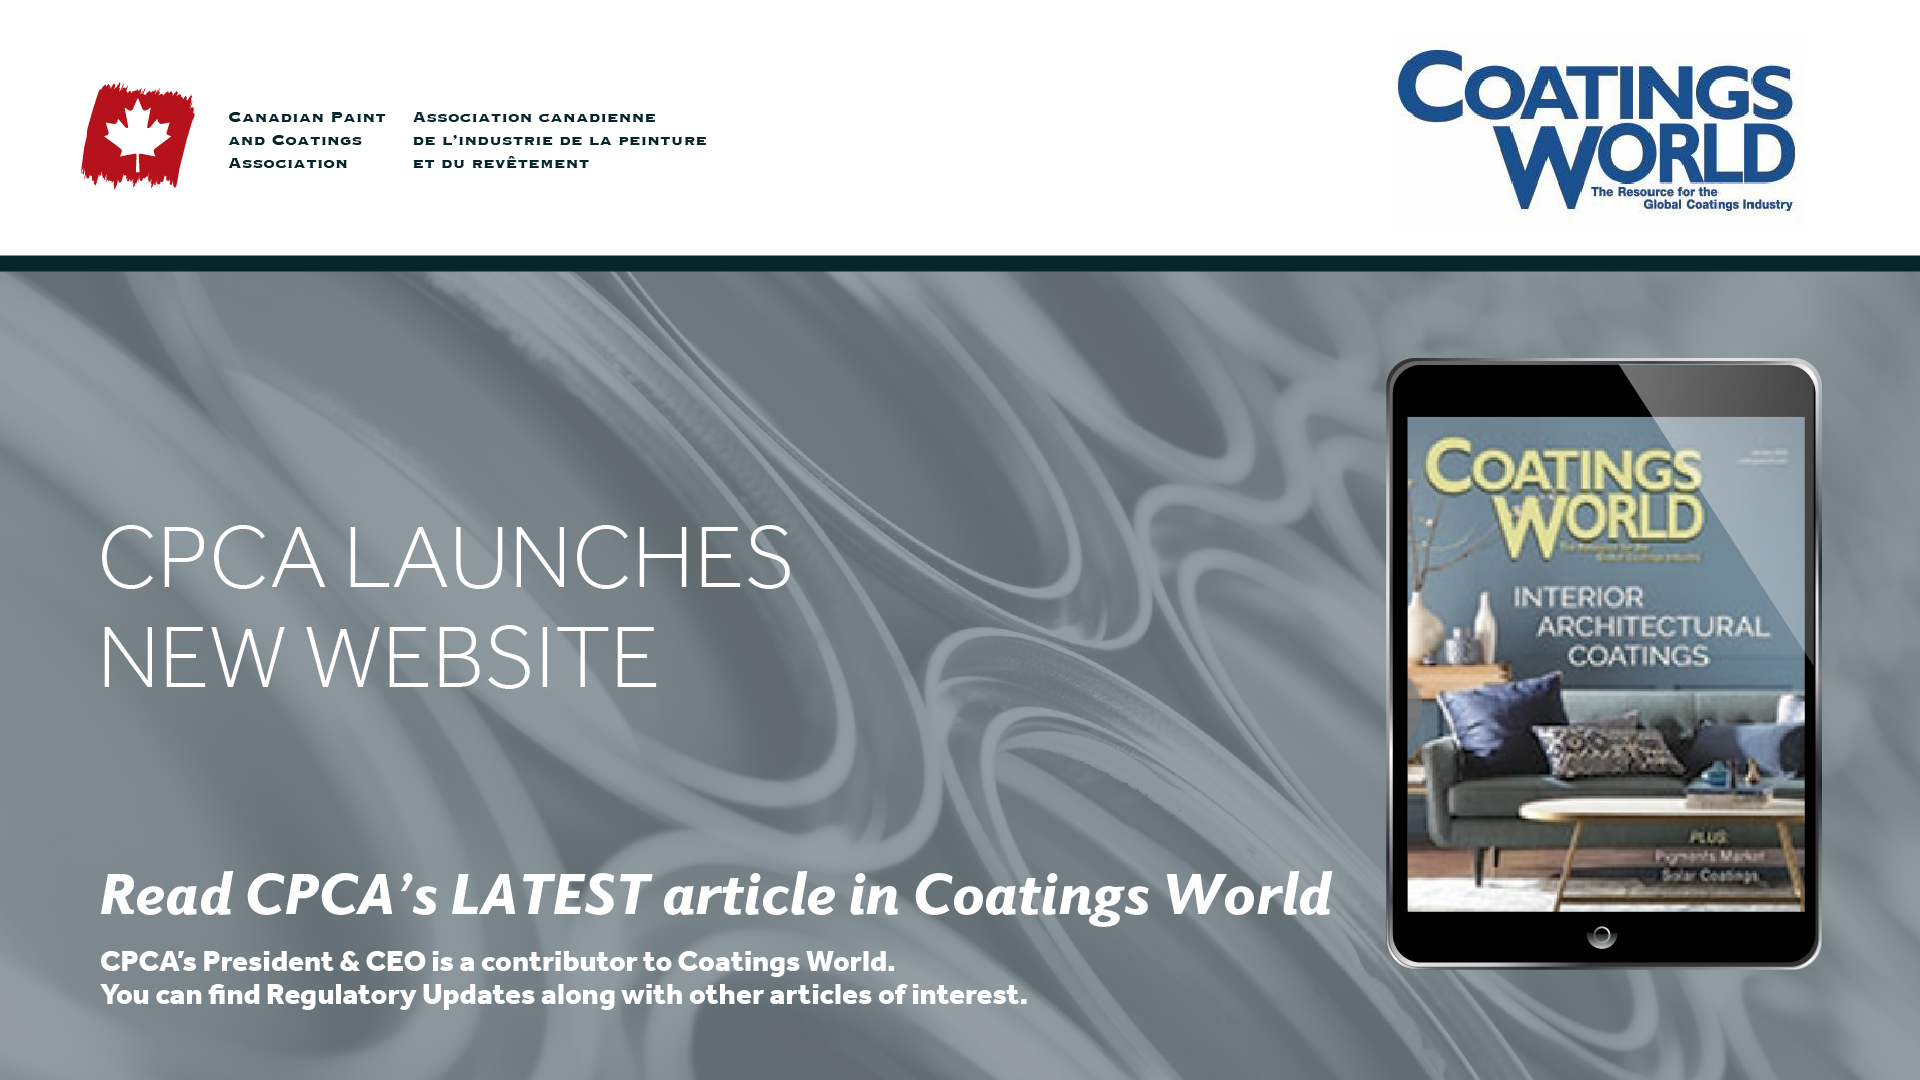 CPCA Launches New Website